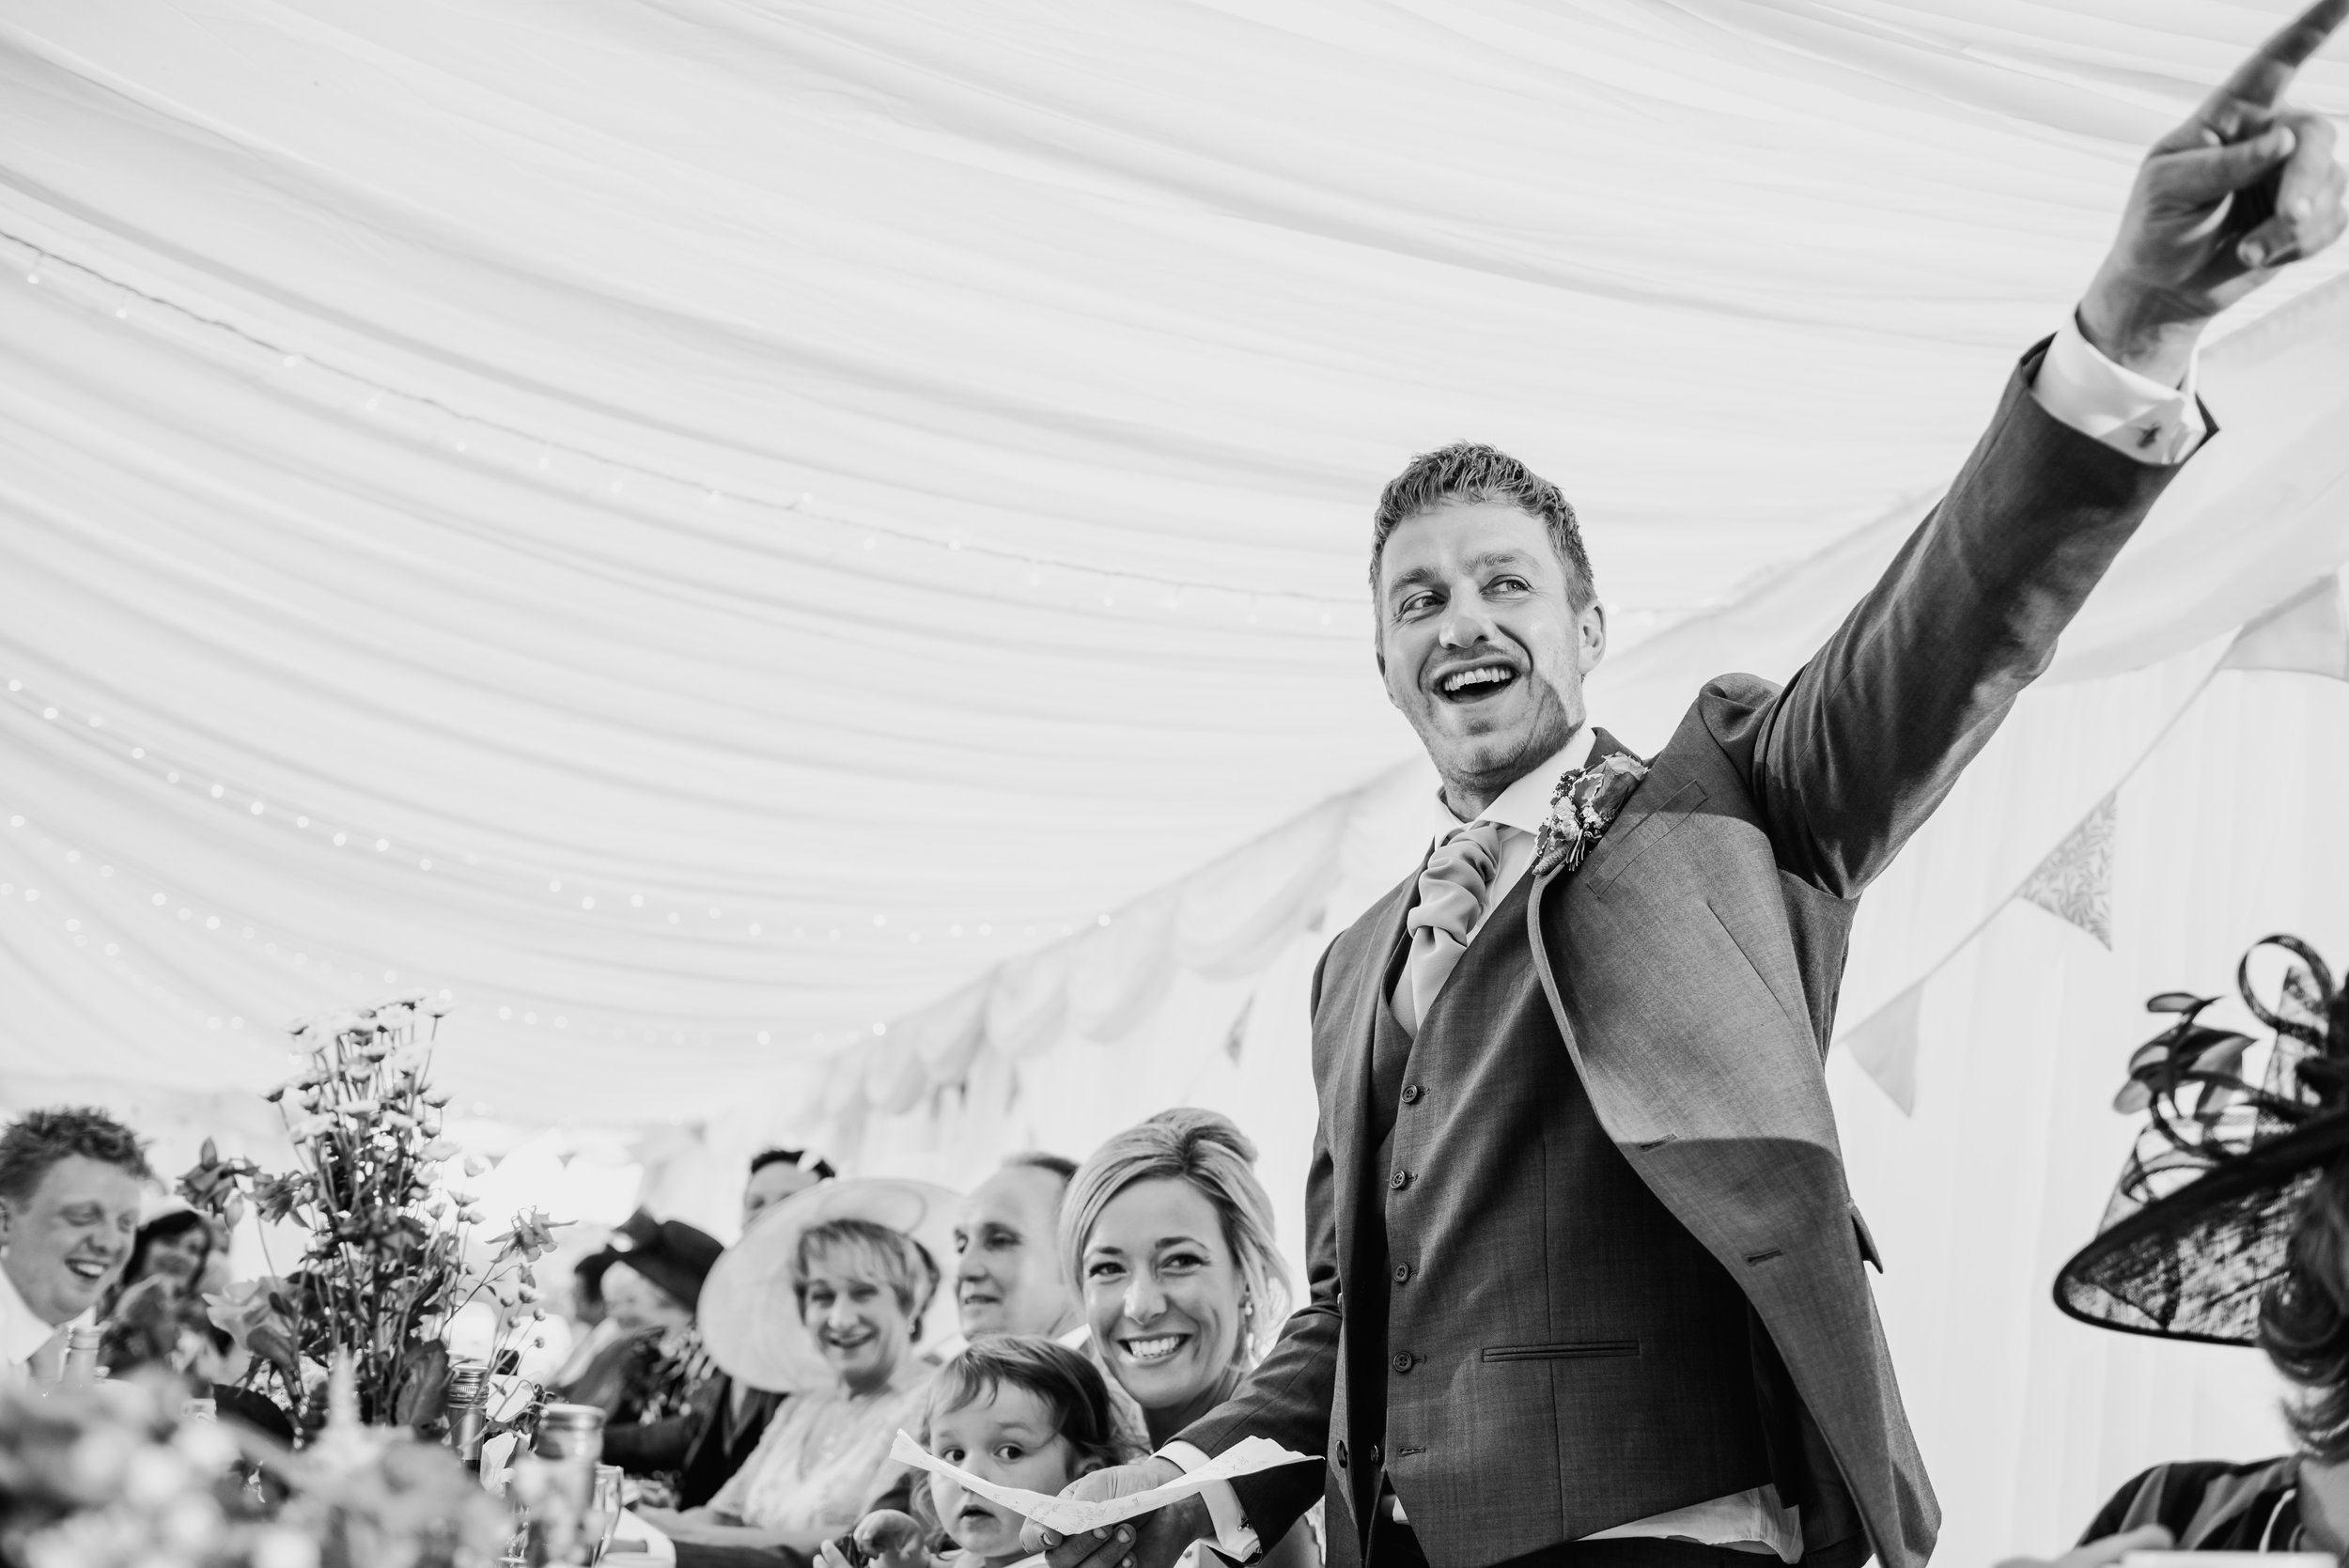 bw photo of the groom pointing